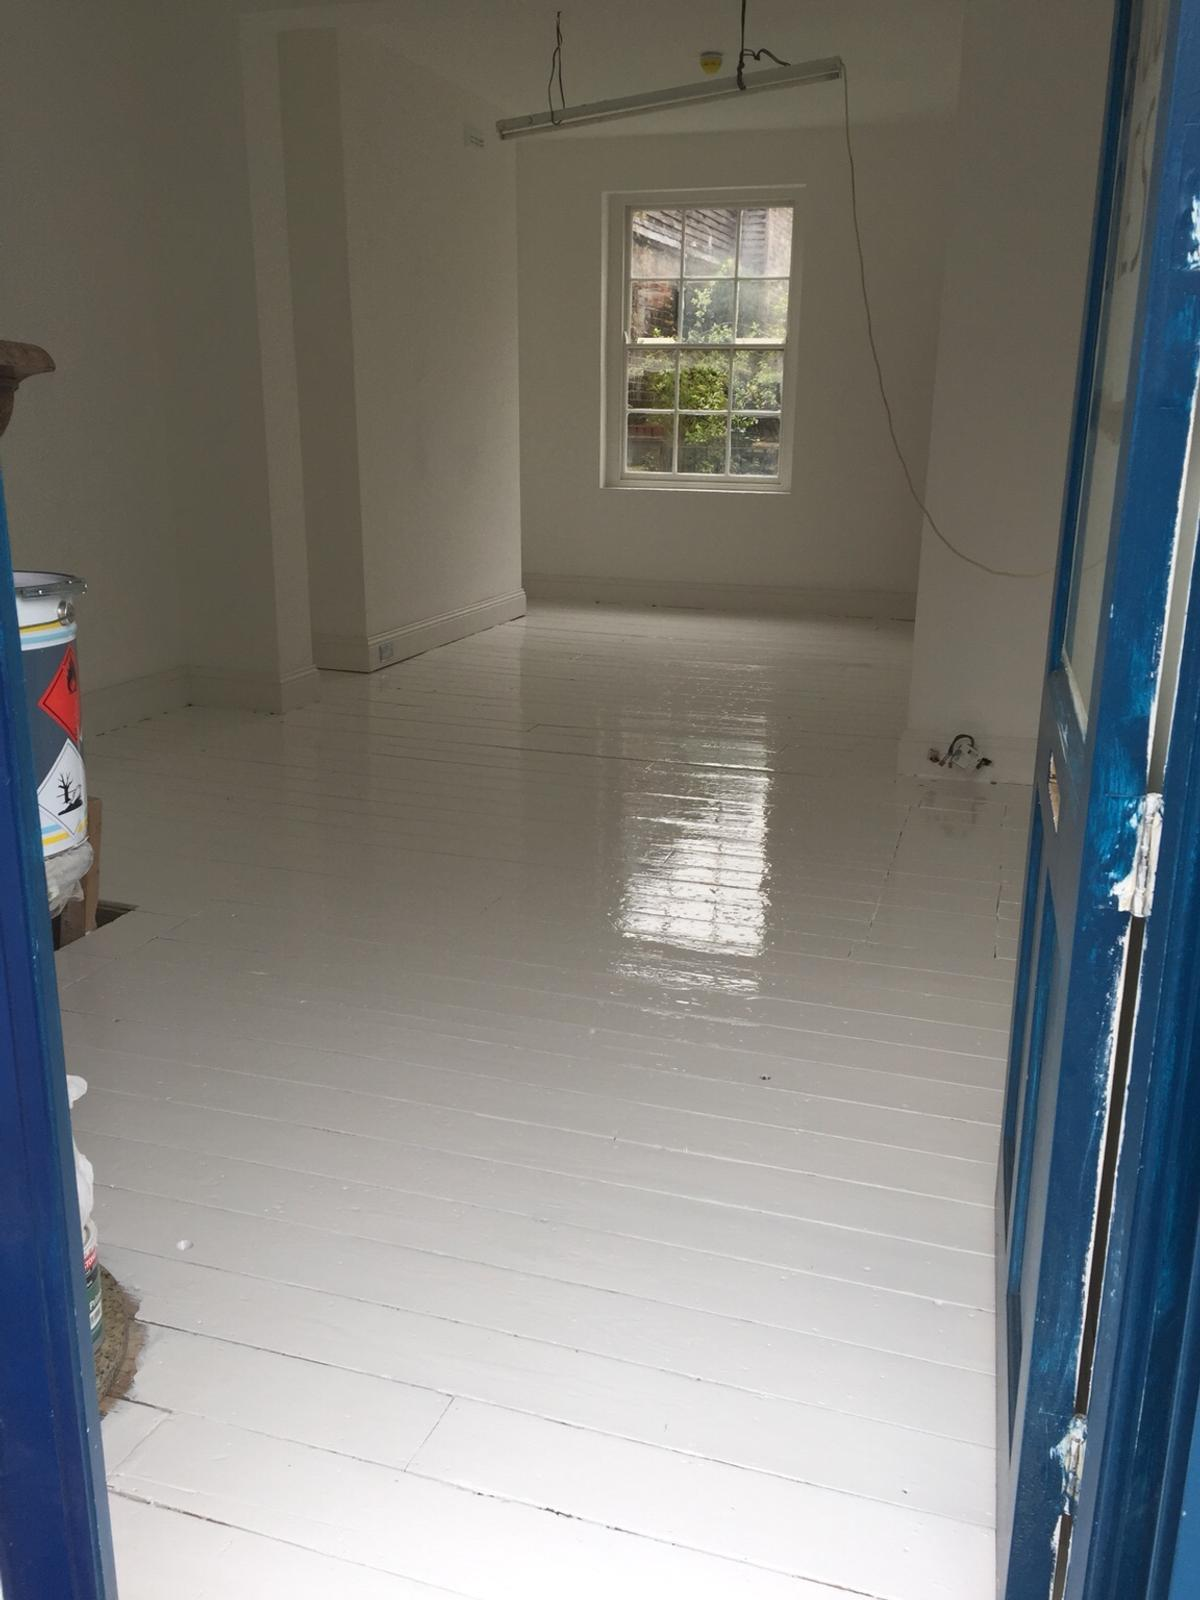 Epoxy Resin Wood Floor Paint Diy Craft In Ec1r Camden For 75 00 For Sale Shpock